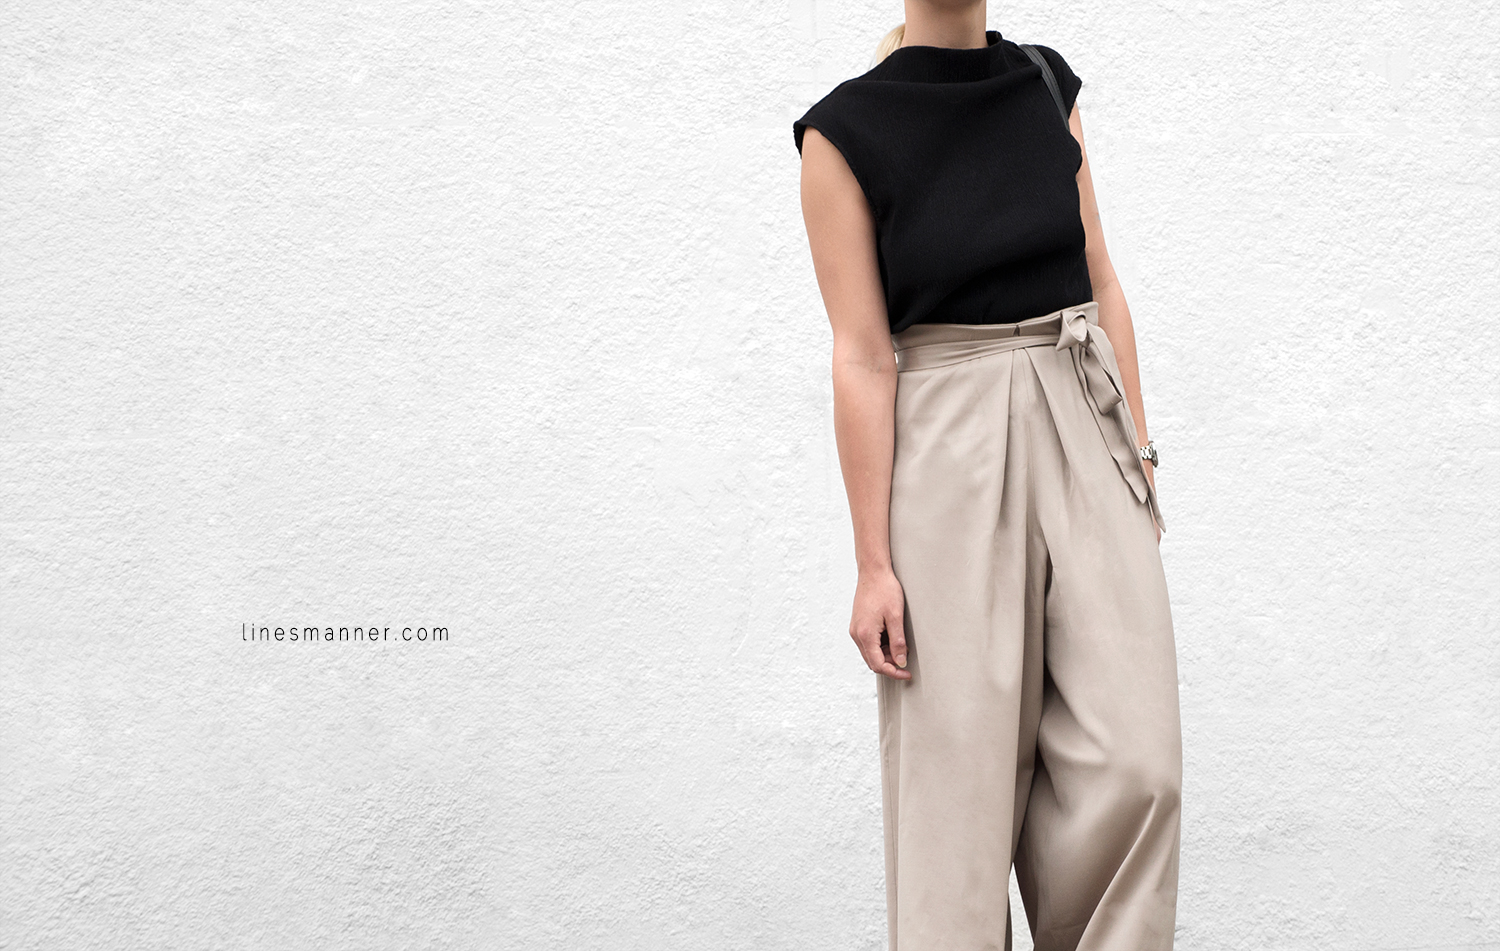 Lines-Manner-Neutrals-Quality-Lora_Gene-Wide_Leg_Pant-Modern-Sophistication-Tailored-Essentials-Details-Simplicity-Summer_vibes-Volume-Proportion-Flowy-7